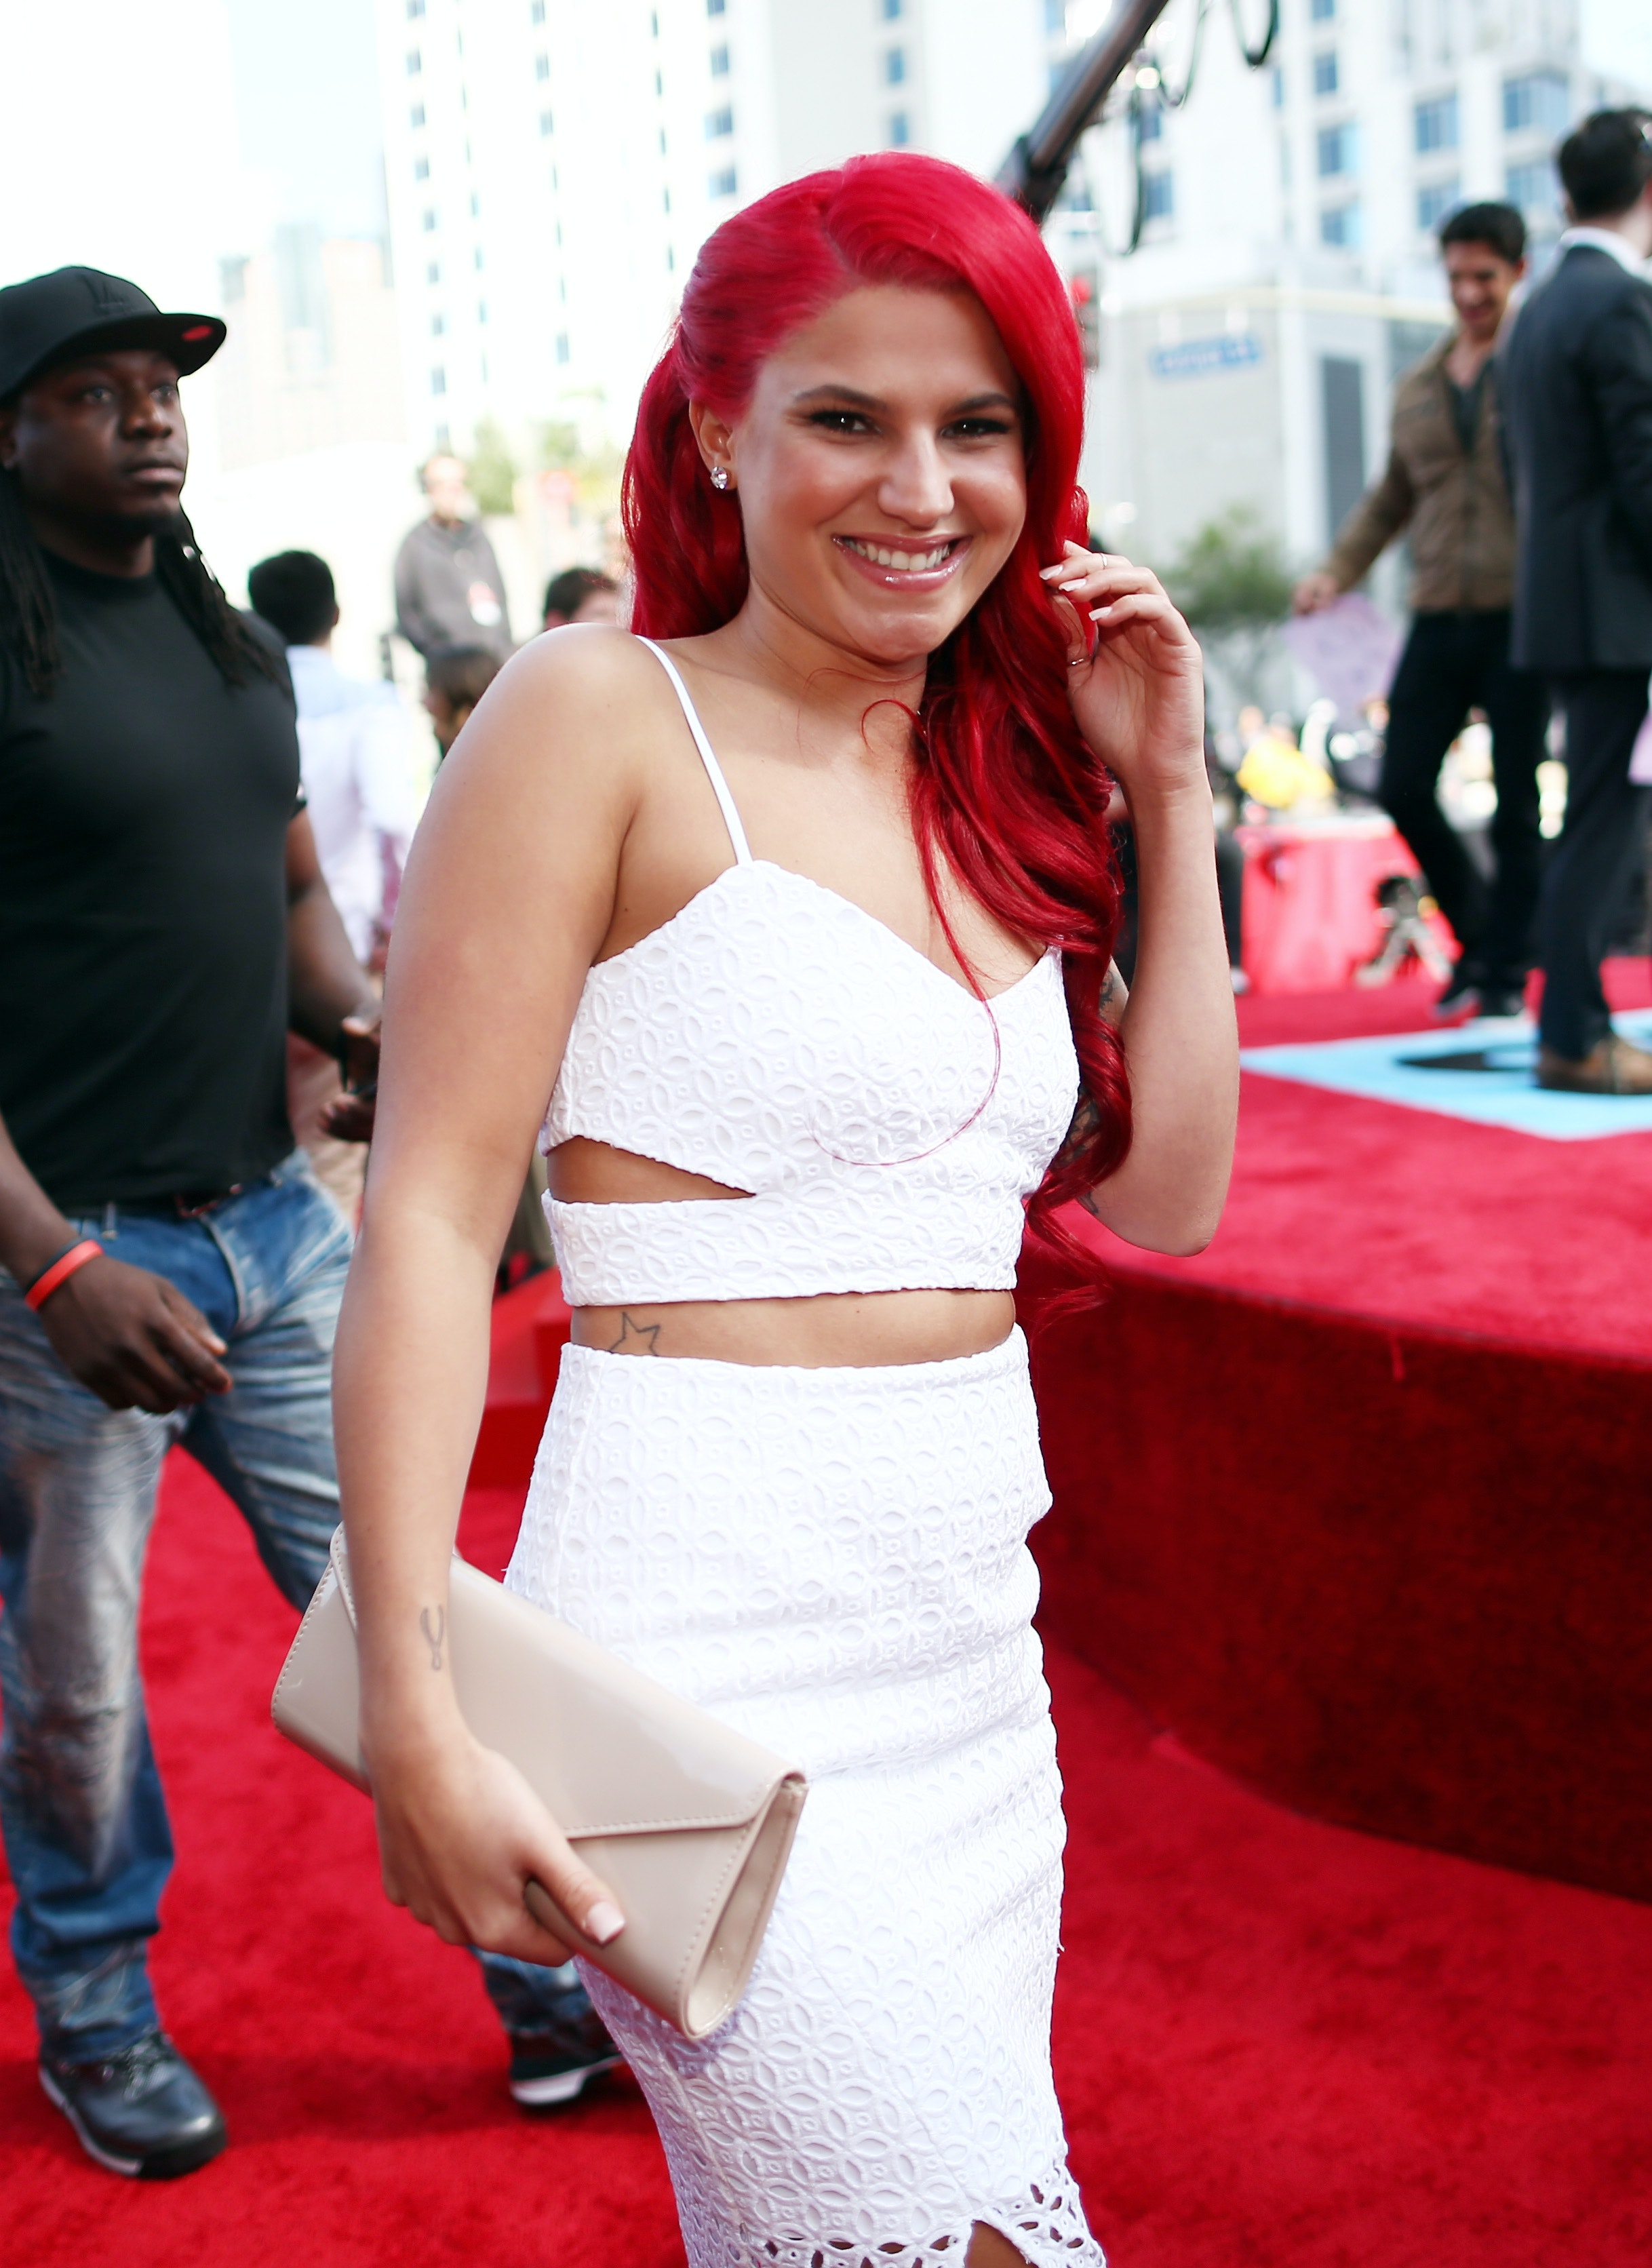 is carly from girl code still dating chris Stand-up comedian carly aquilino is not dating: once dated actor chris   longer together, addressing that they're, despite everything, still close friends  interview with girl code/guy code carly aquilino and chris distefano.